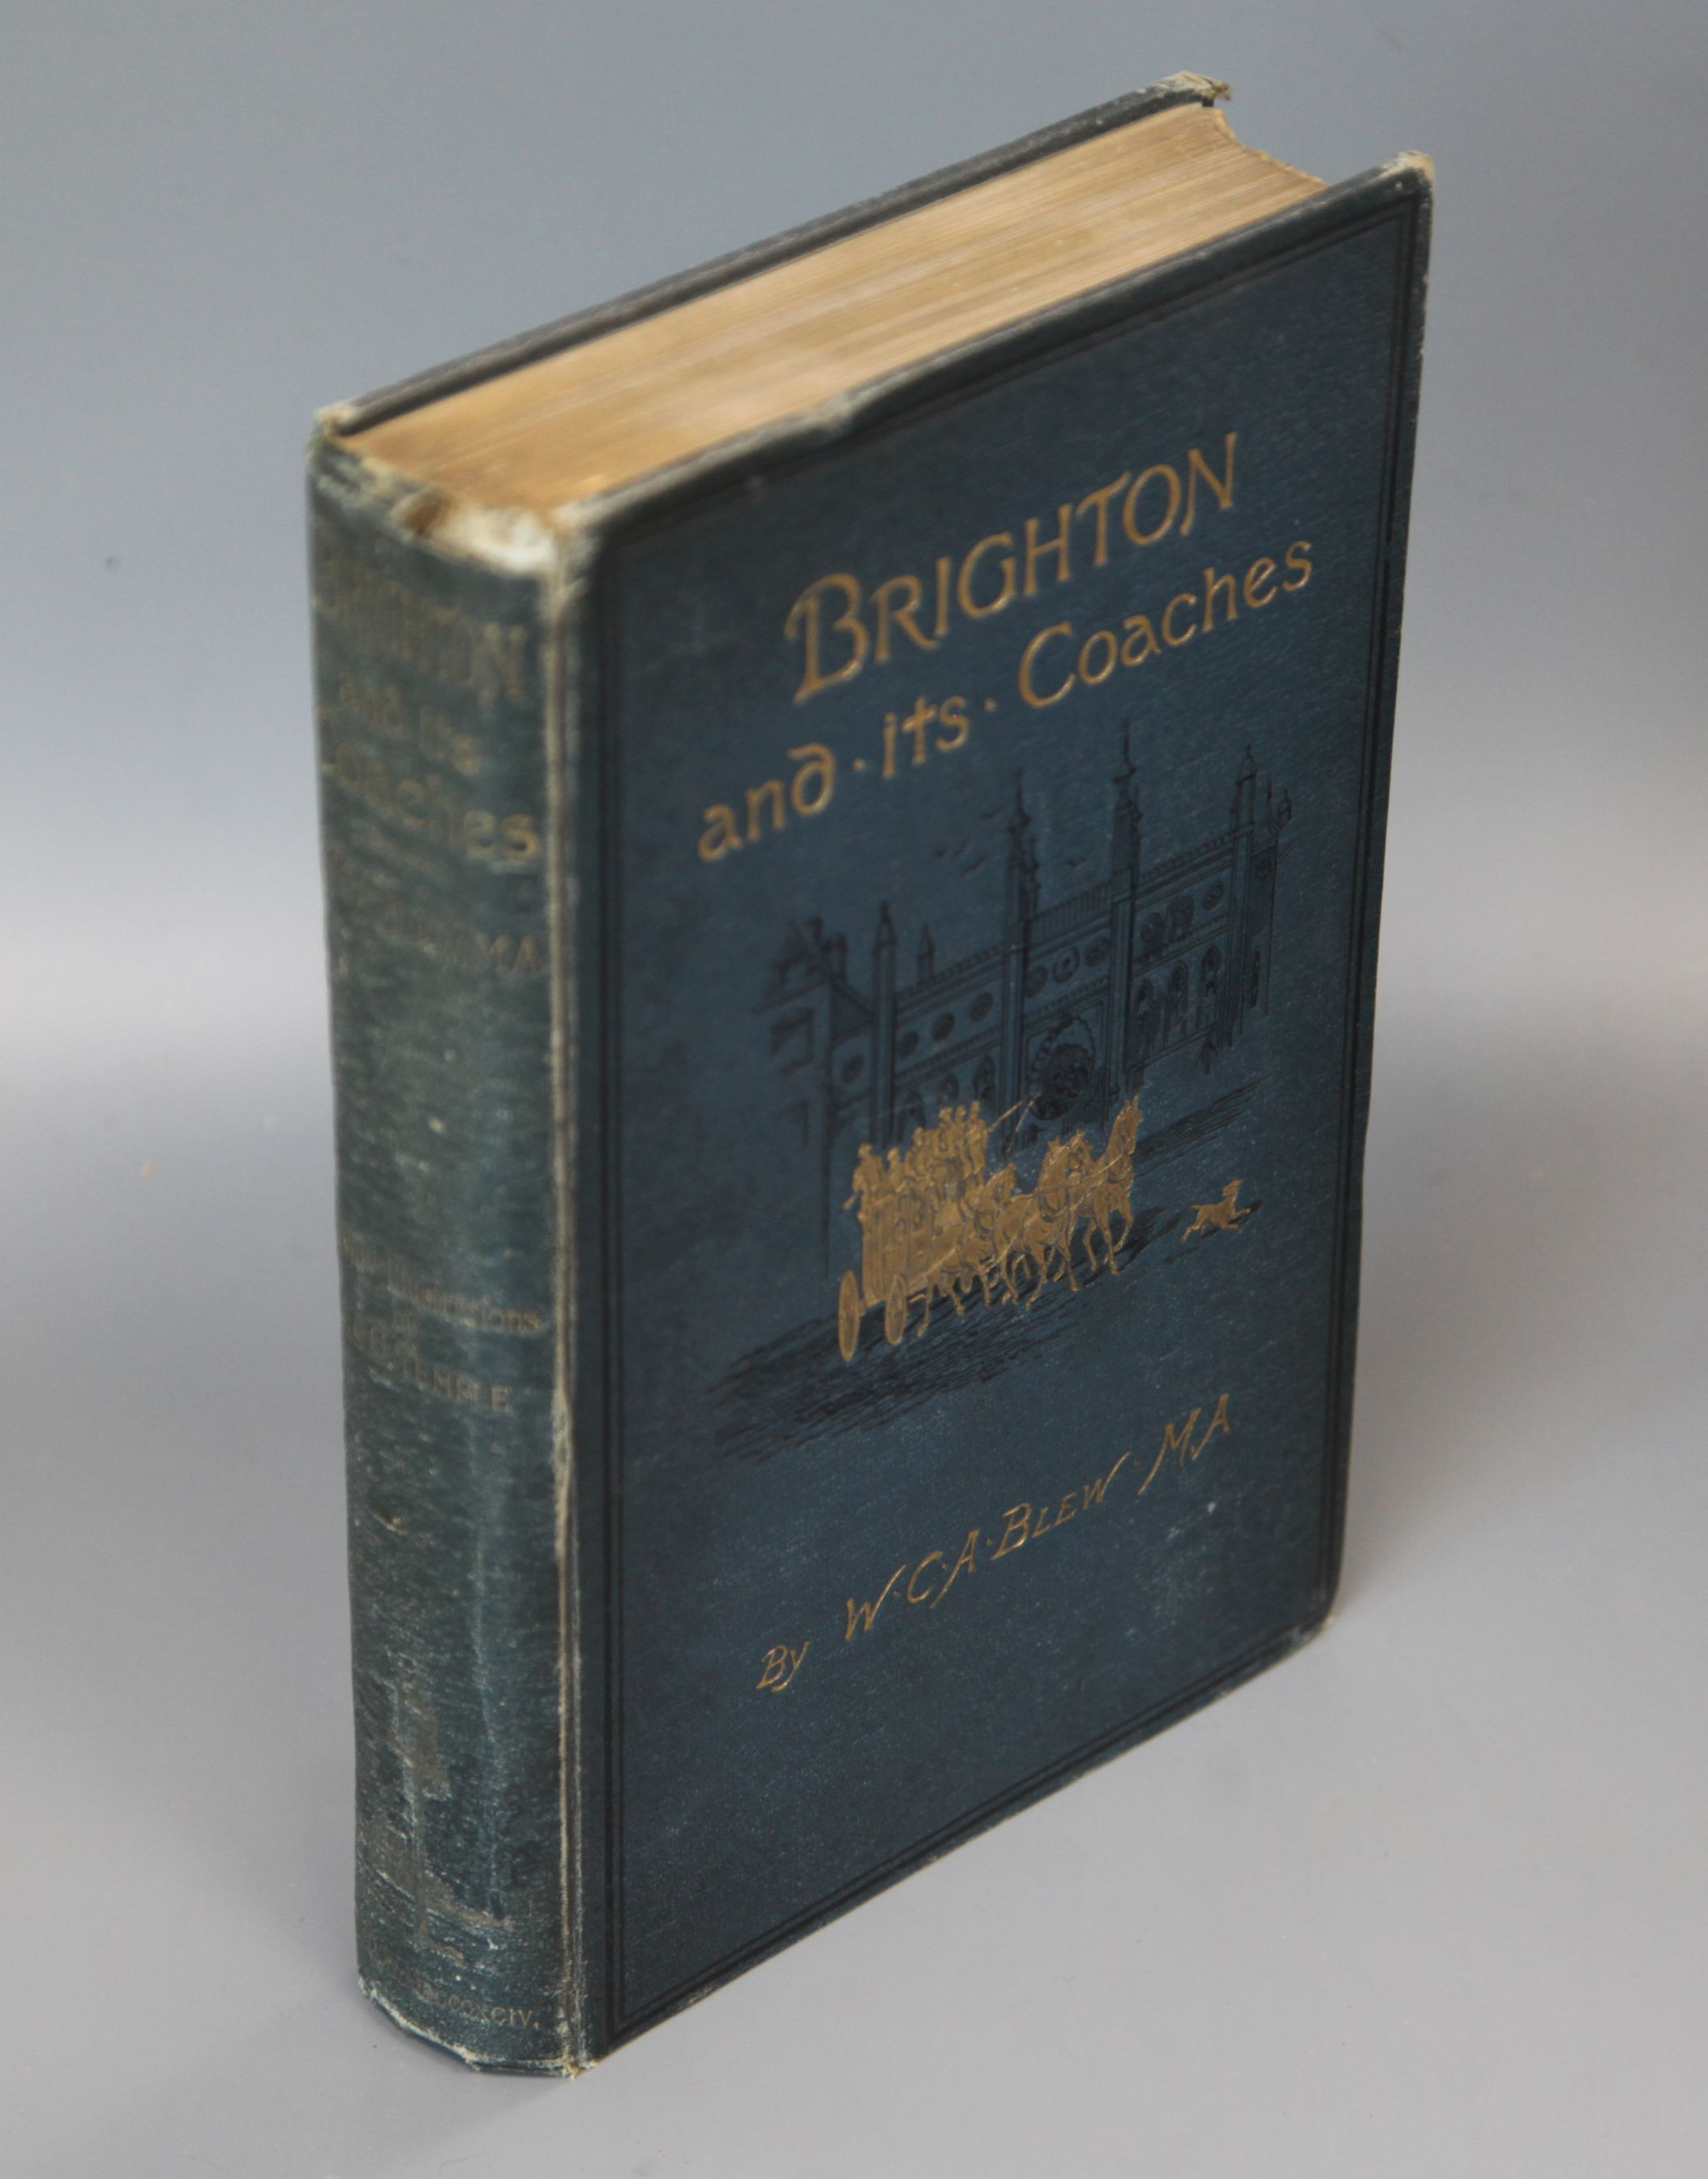 Lot 11 - Blew, William C.A. - Brighton and its Coaches, 1st edition, original cloth, worn and scuffed, with